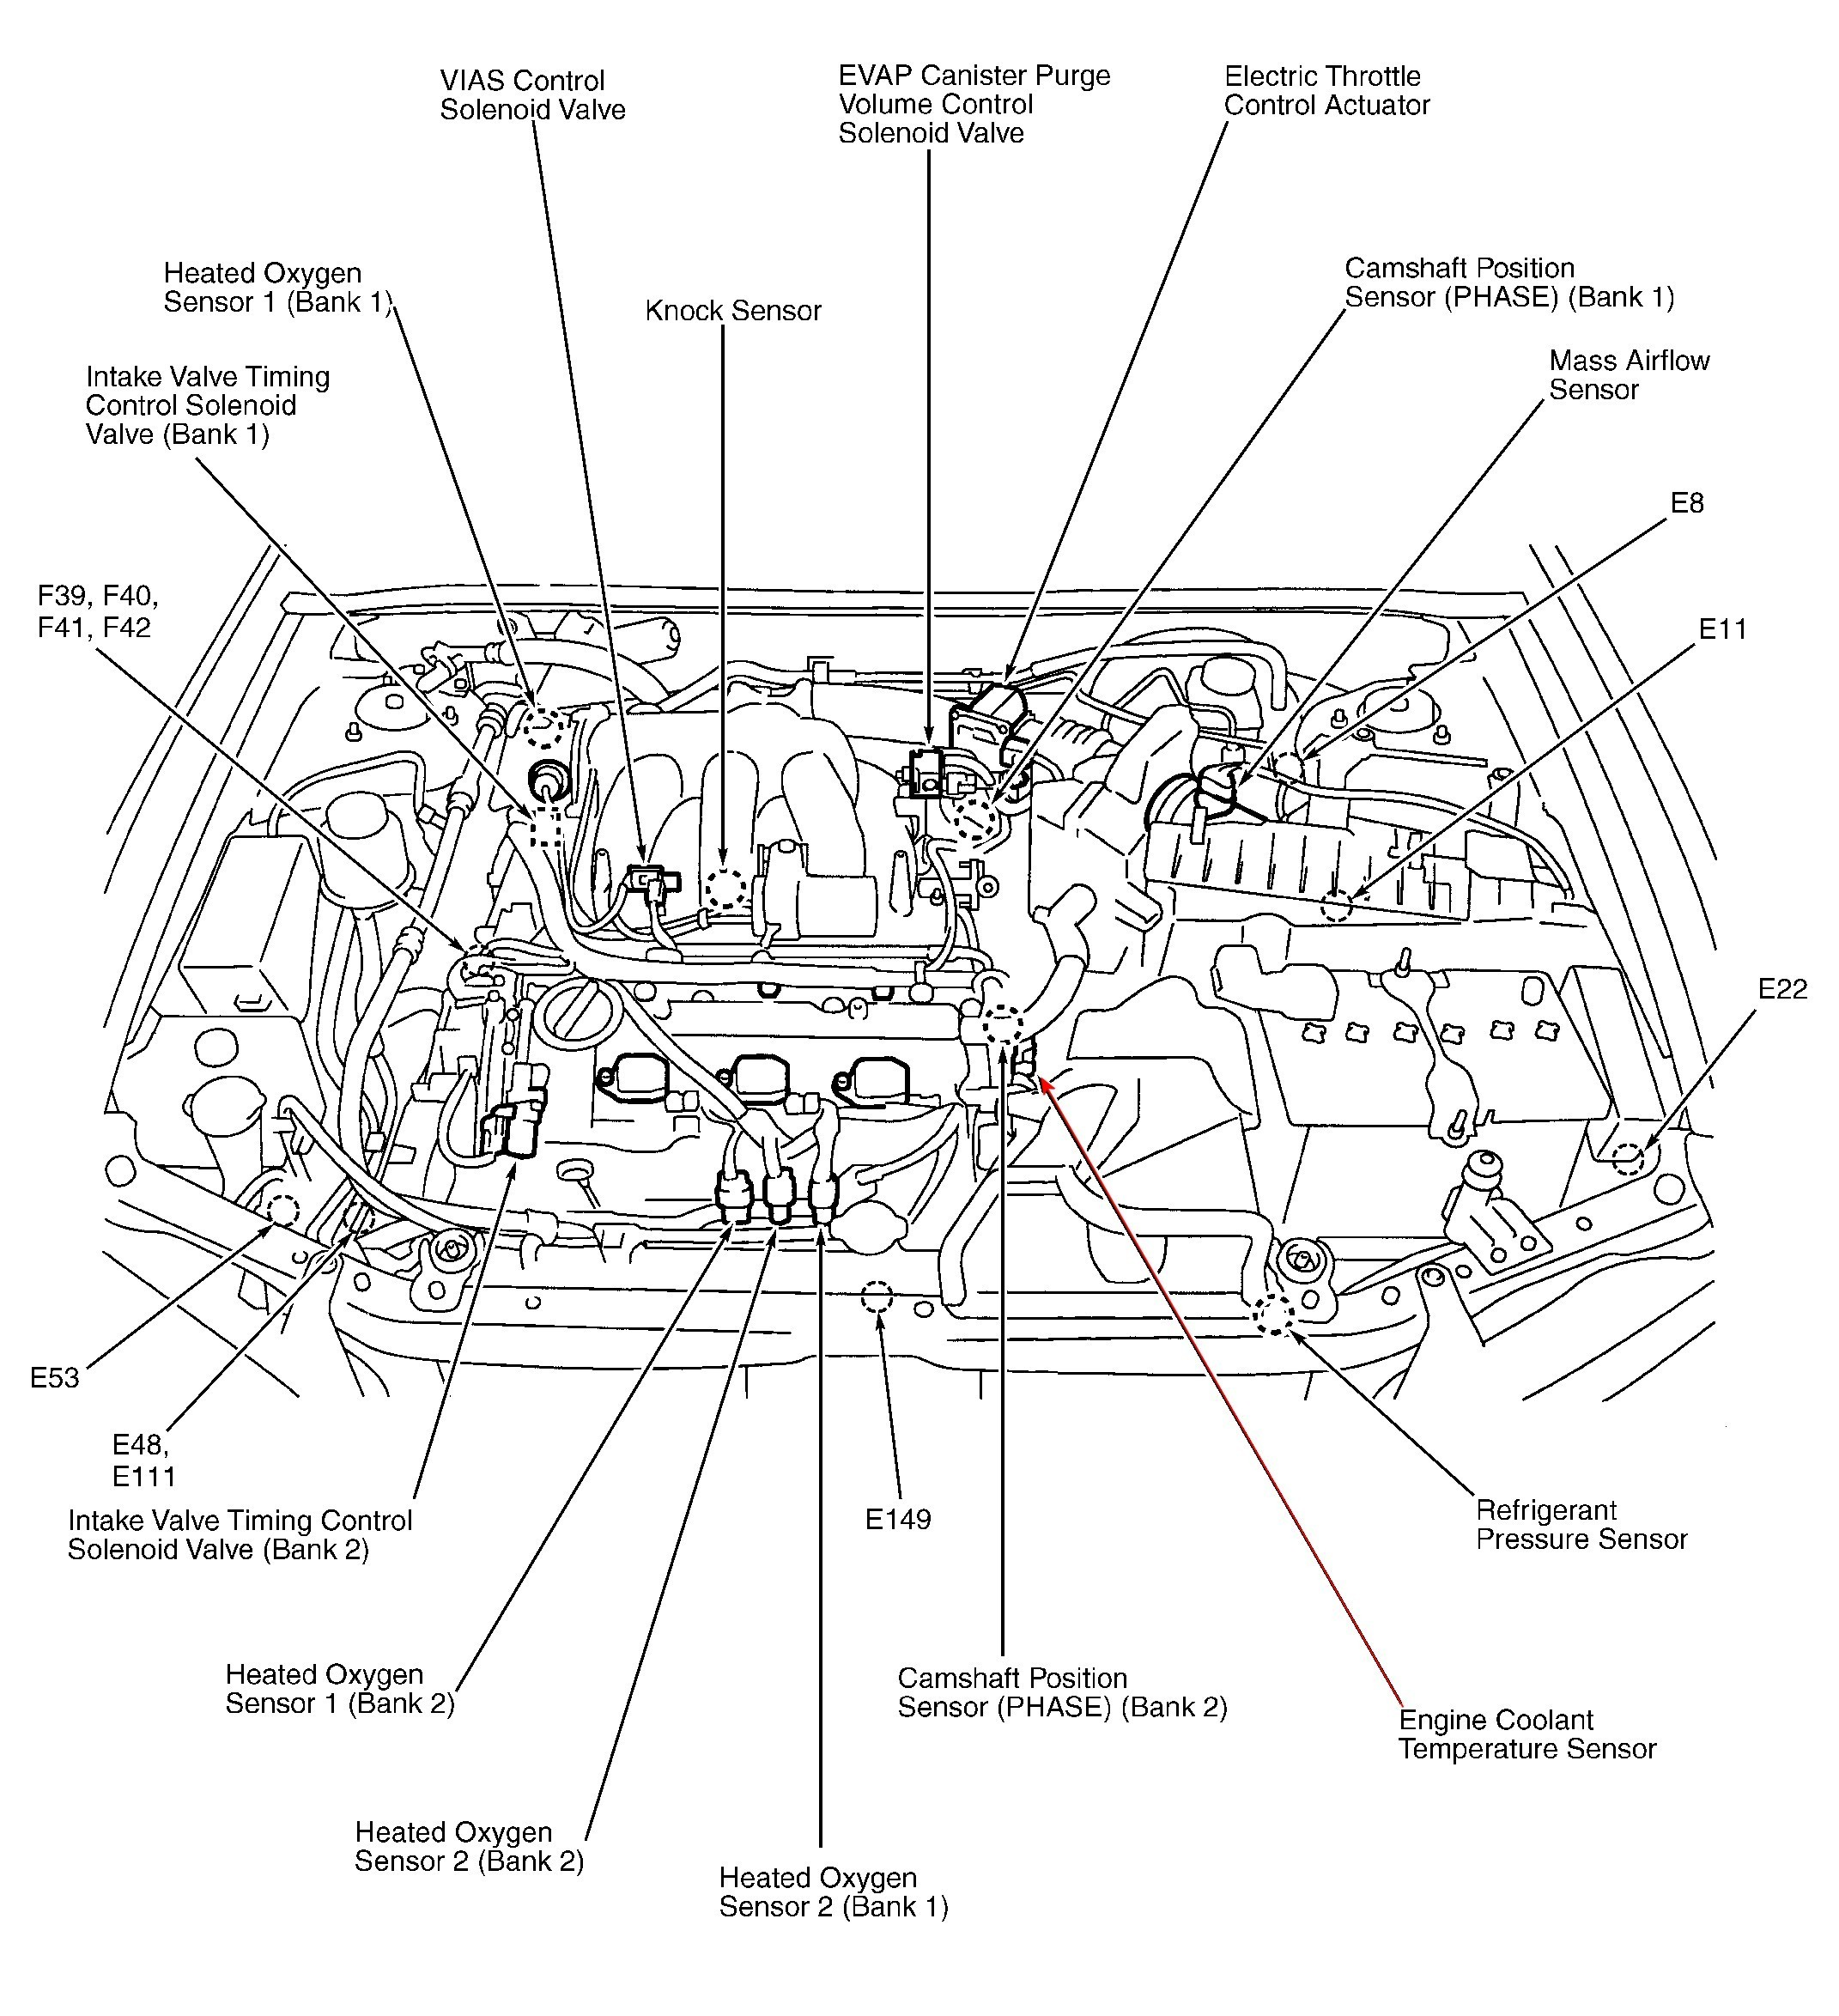 nissan 3 3 engine diagram reinvent your wiring diagram u2022 rh kismetcars  co uk 2001 mazda tribute v6 engine diagram 2001 vw passat v6 engine diagram